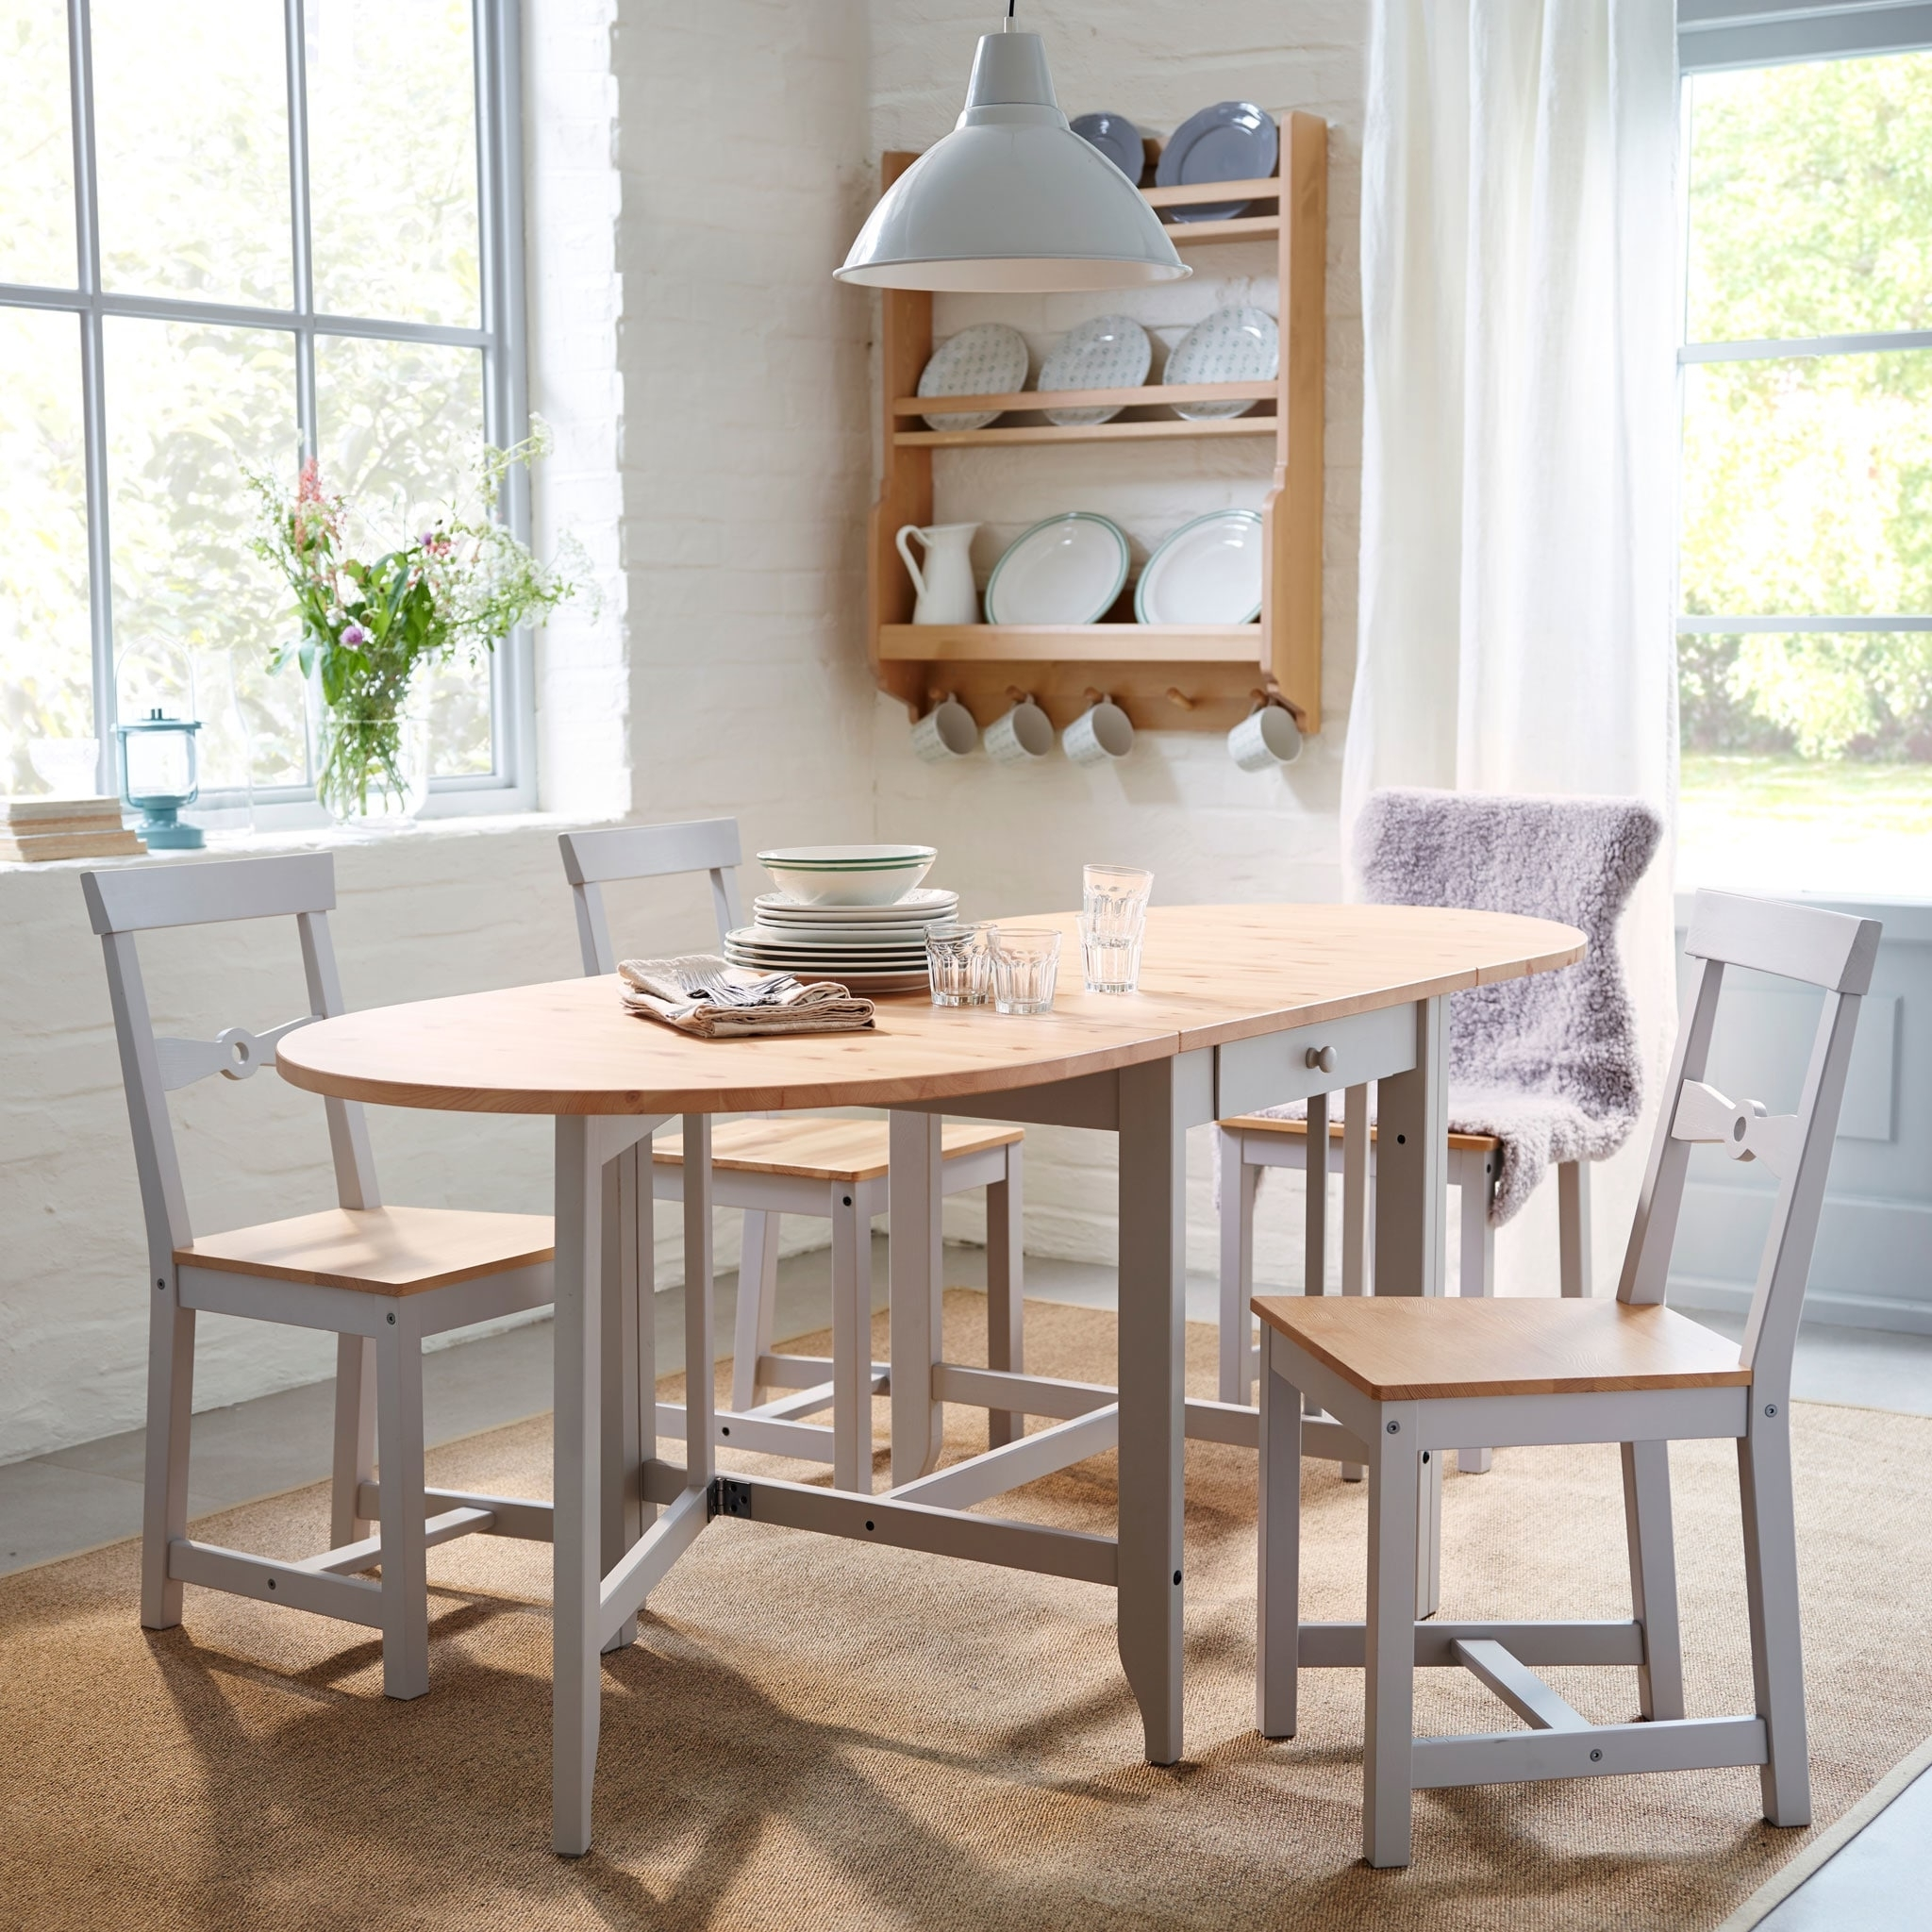 Dining Room Tables Within 2017 Dining Room Furniture & Ideas (Gallery 12 of 25)